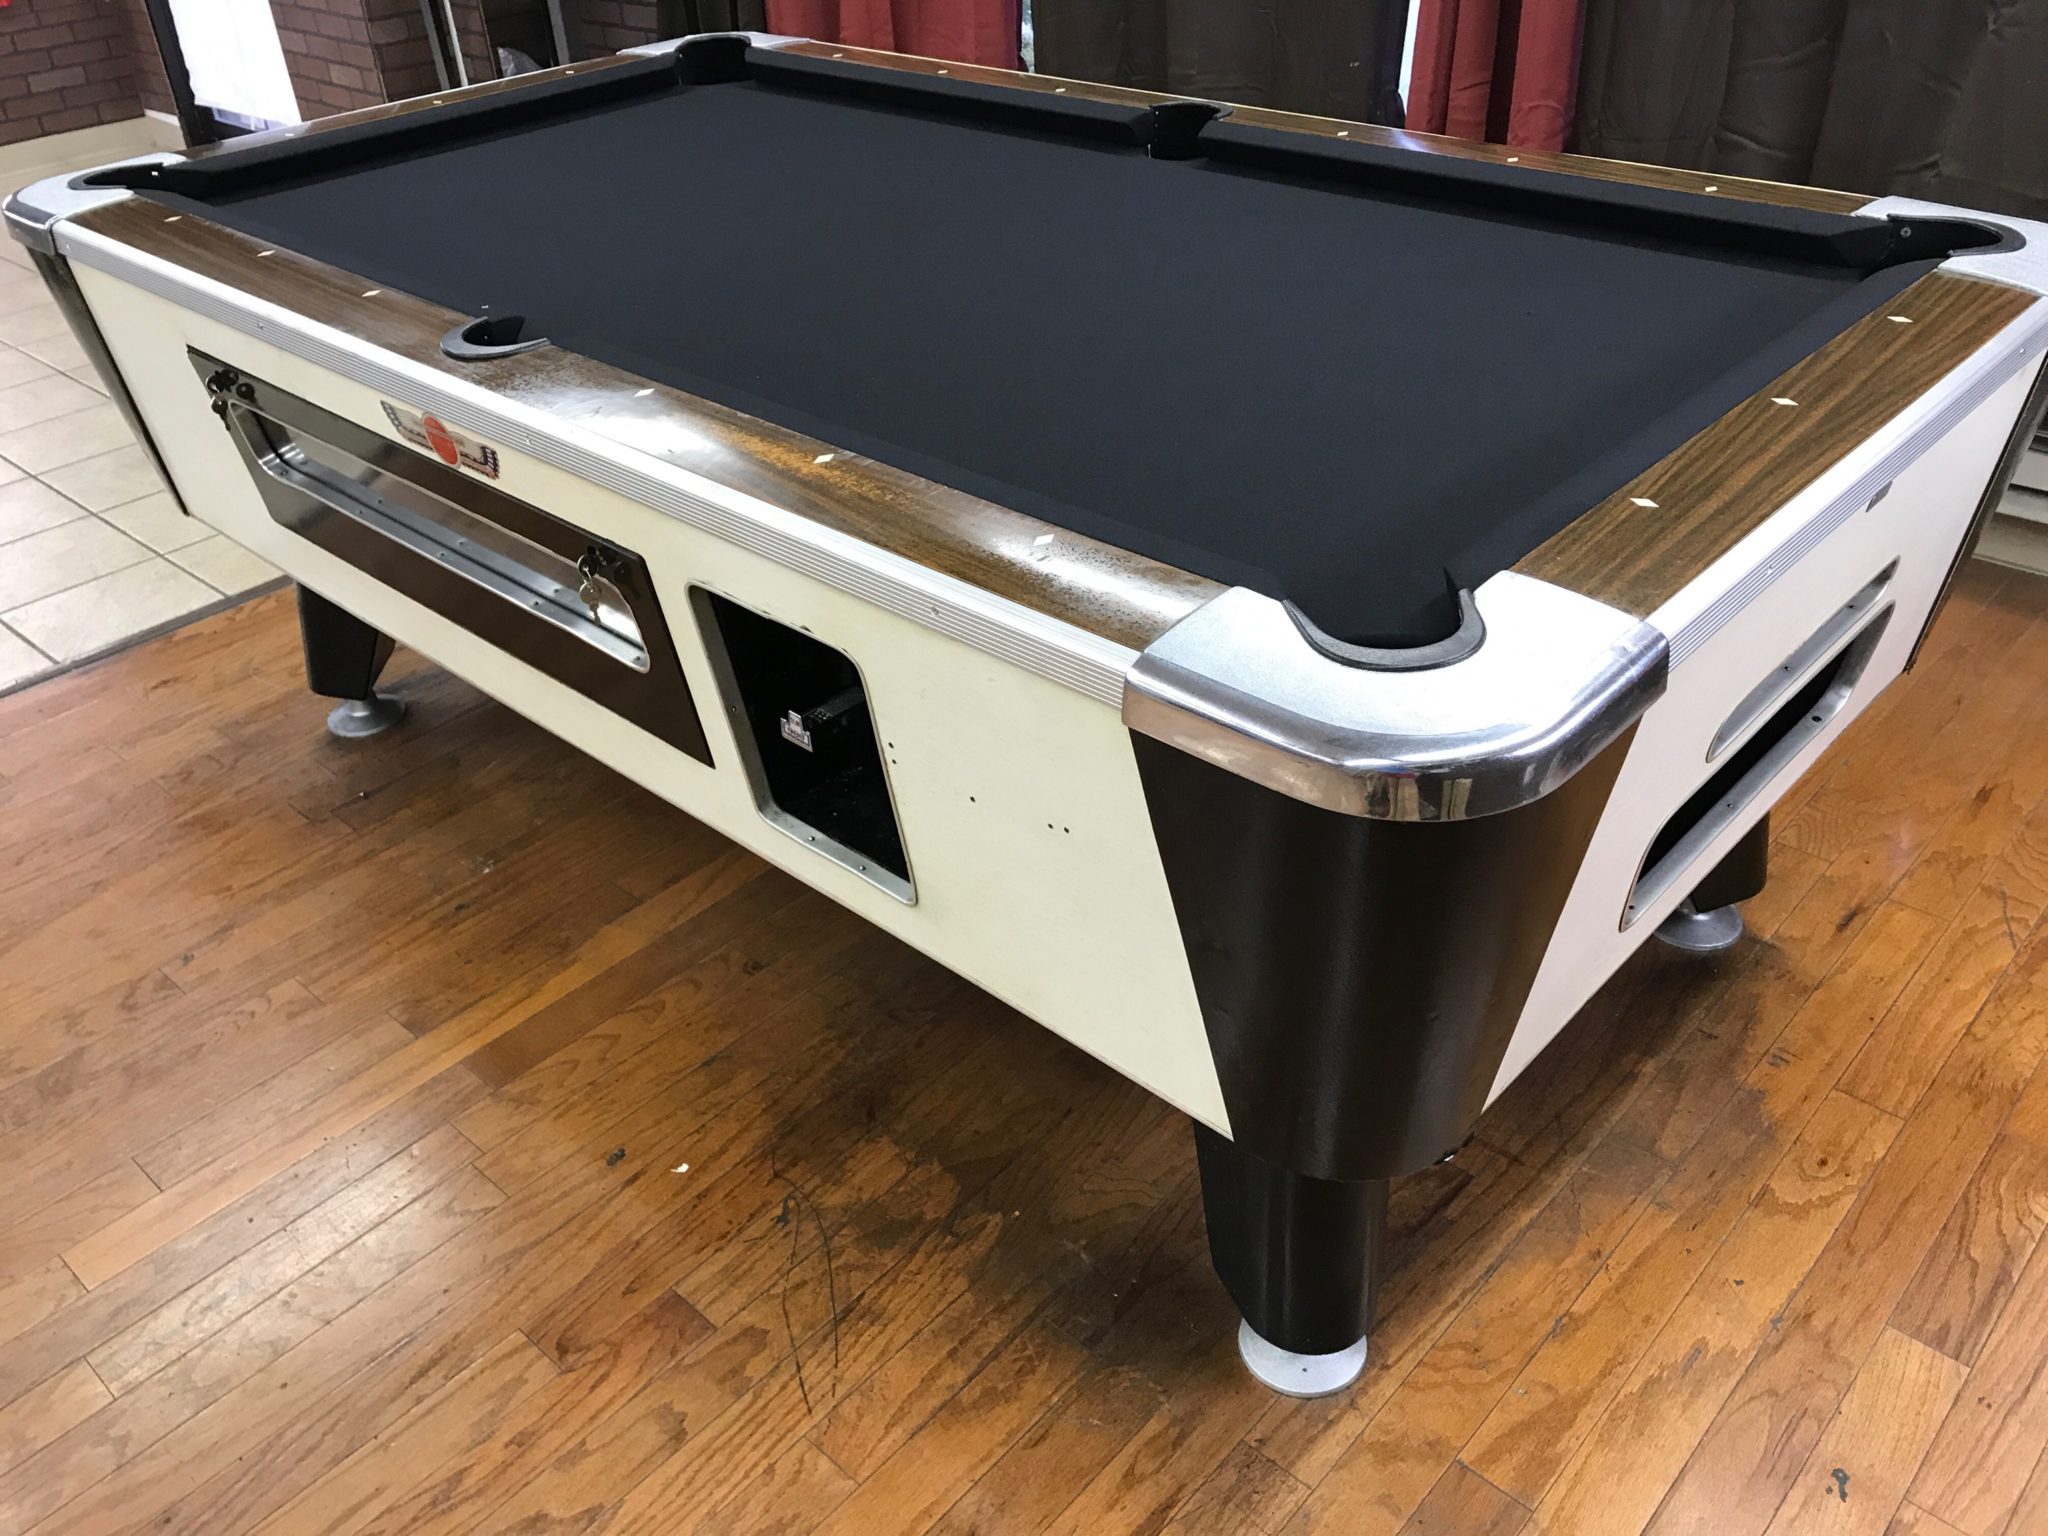 Sold Coin Operated Bar Pool Tables Used Coin Operated Bar Pool - Valley bar pool table for sale